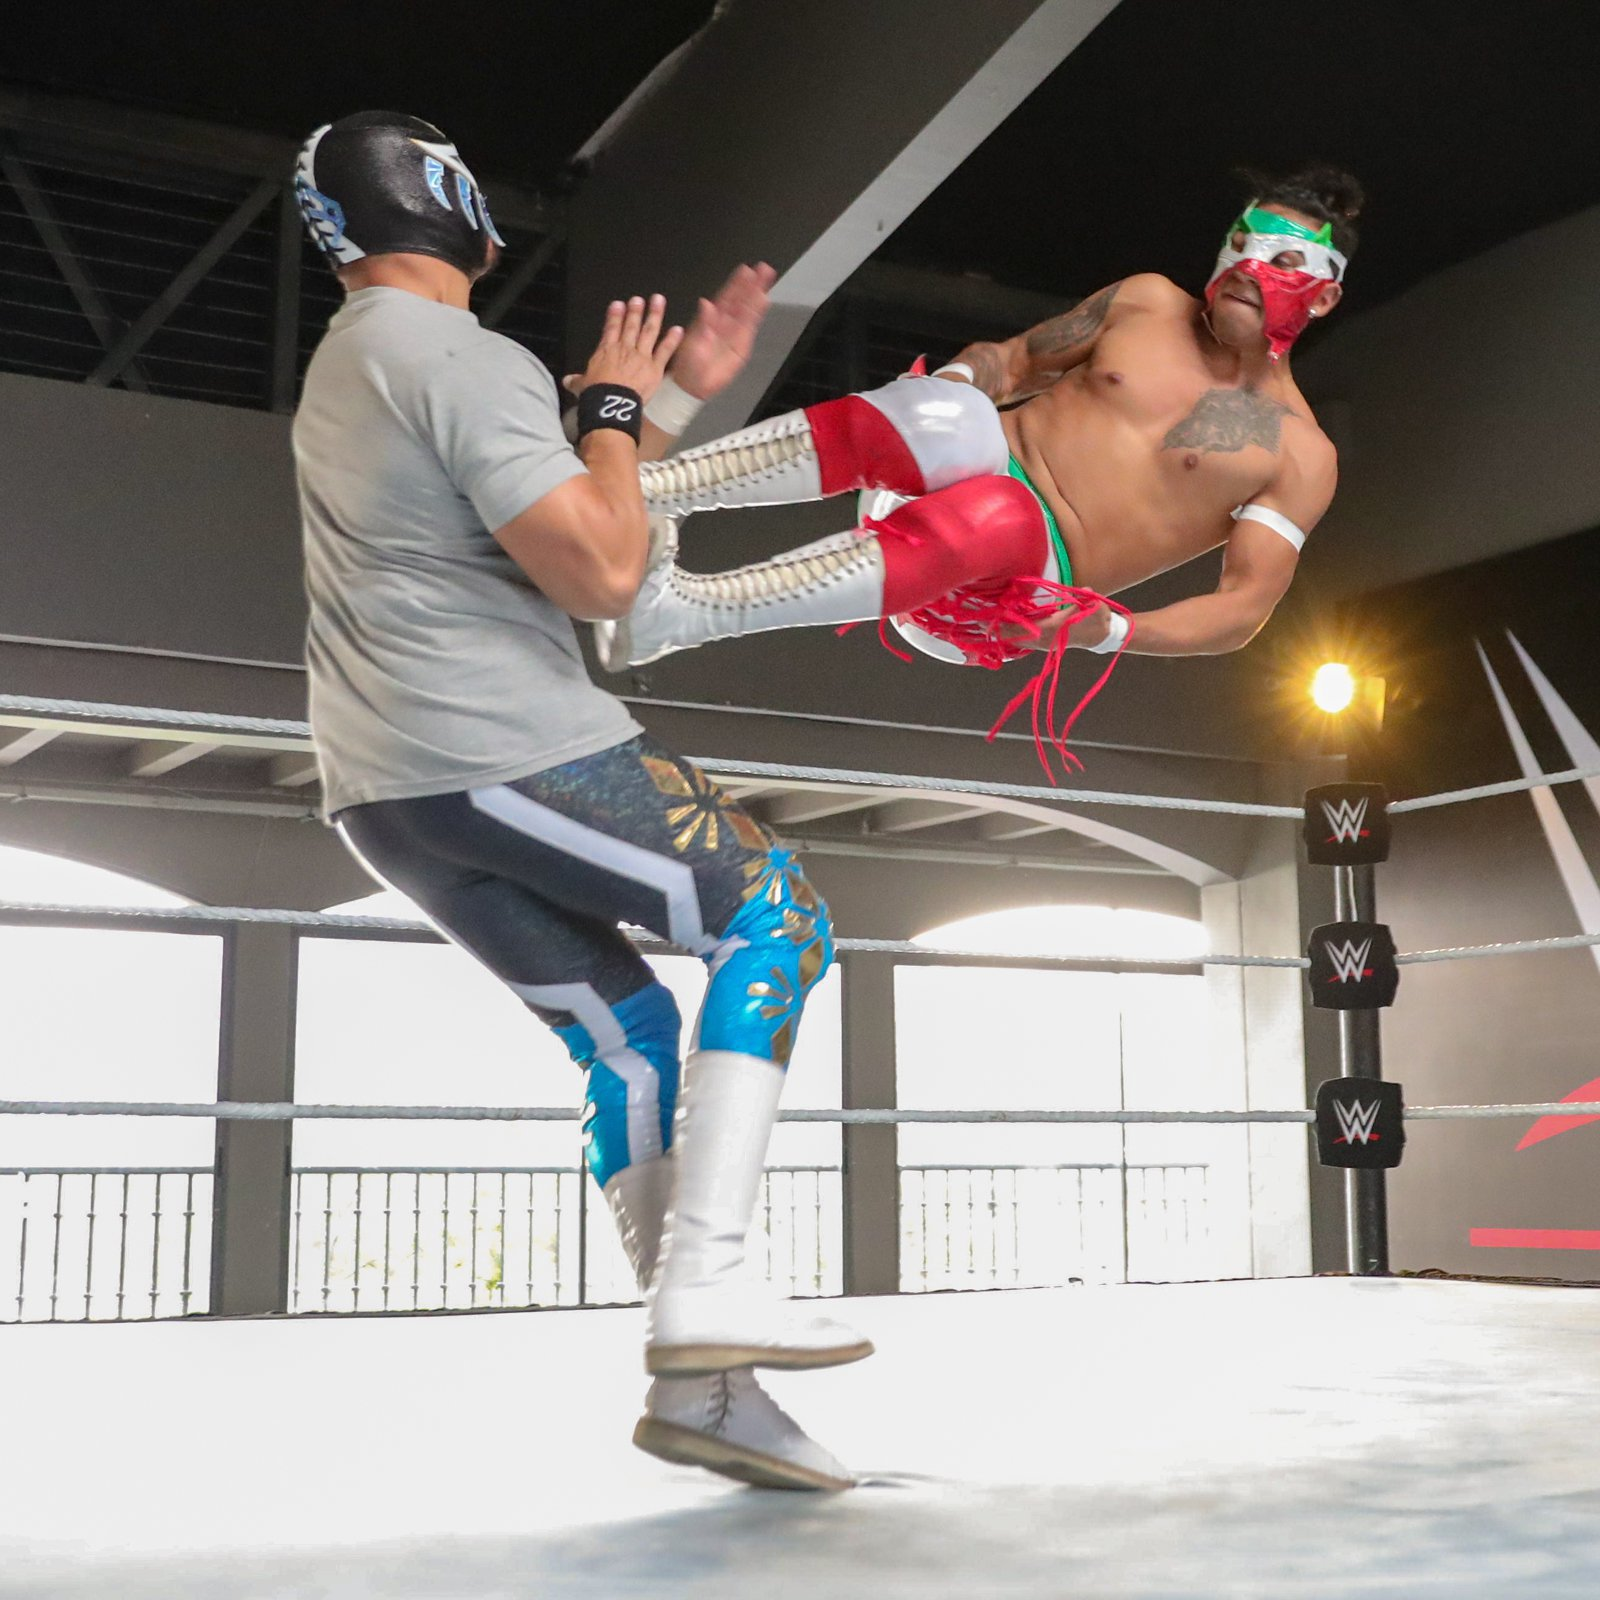 Eighteen-year-old Dragon Bane connects with a precise dropkick.